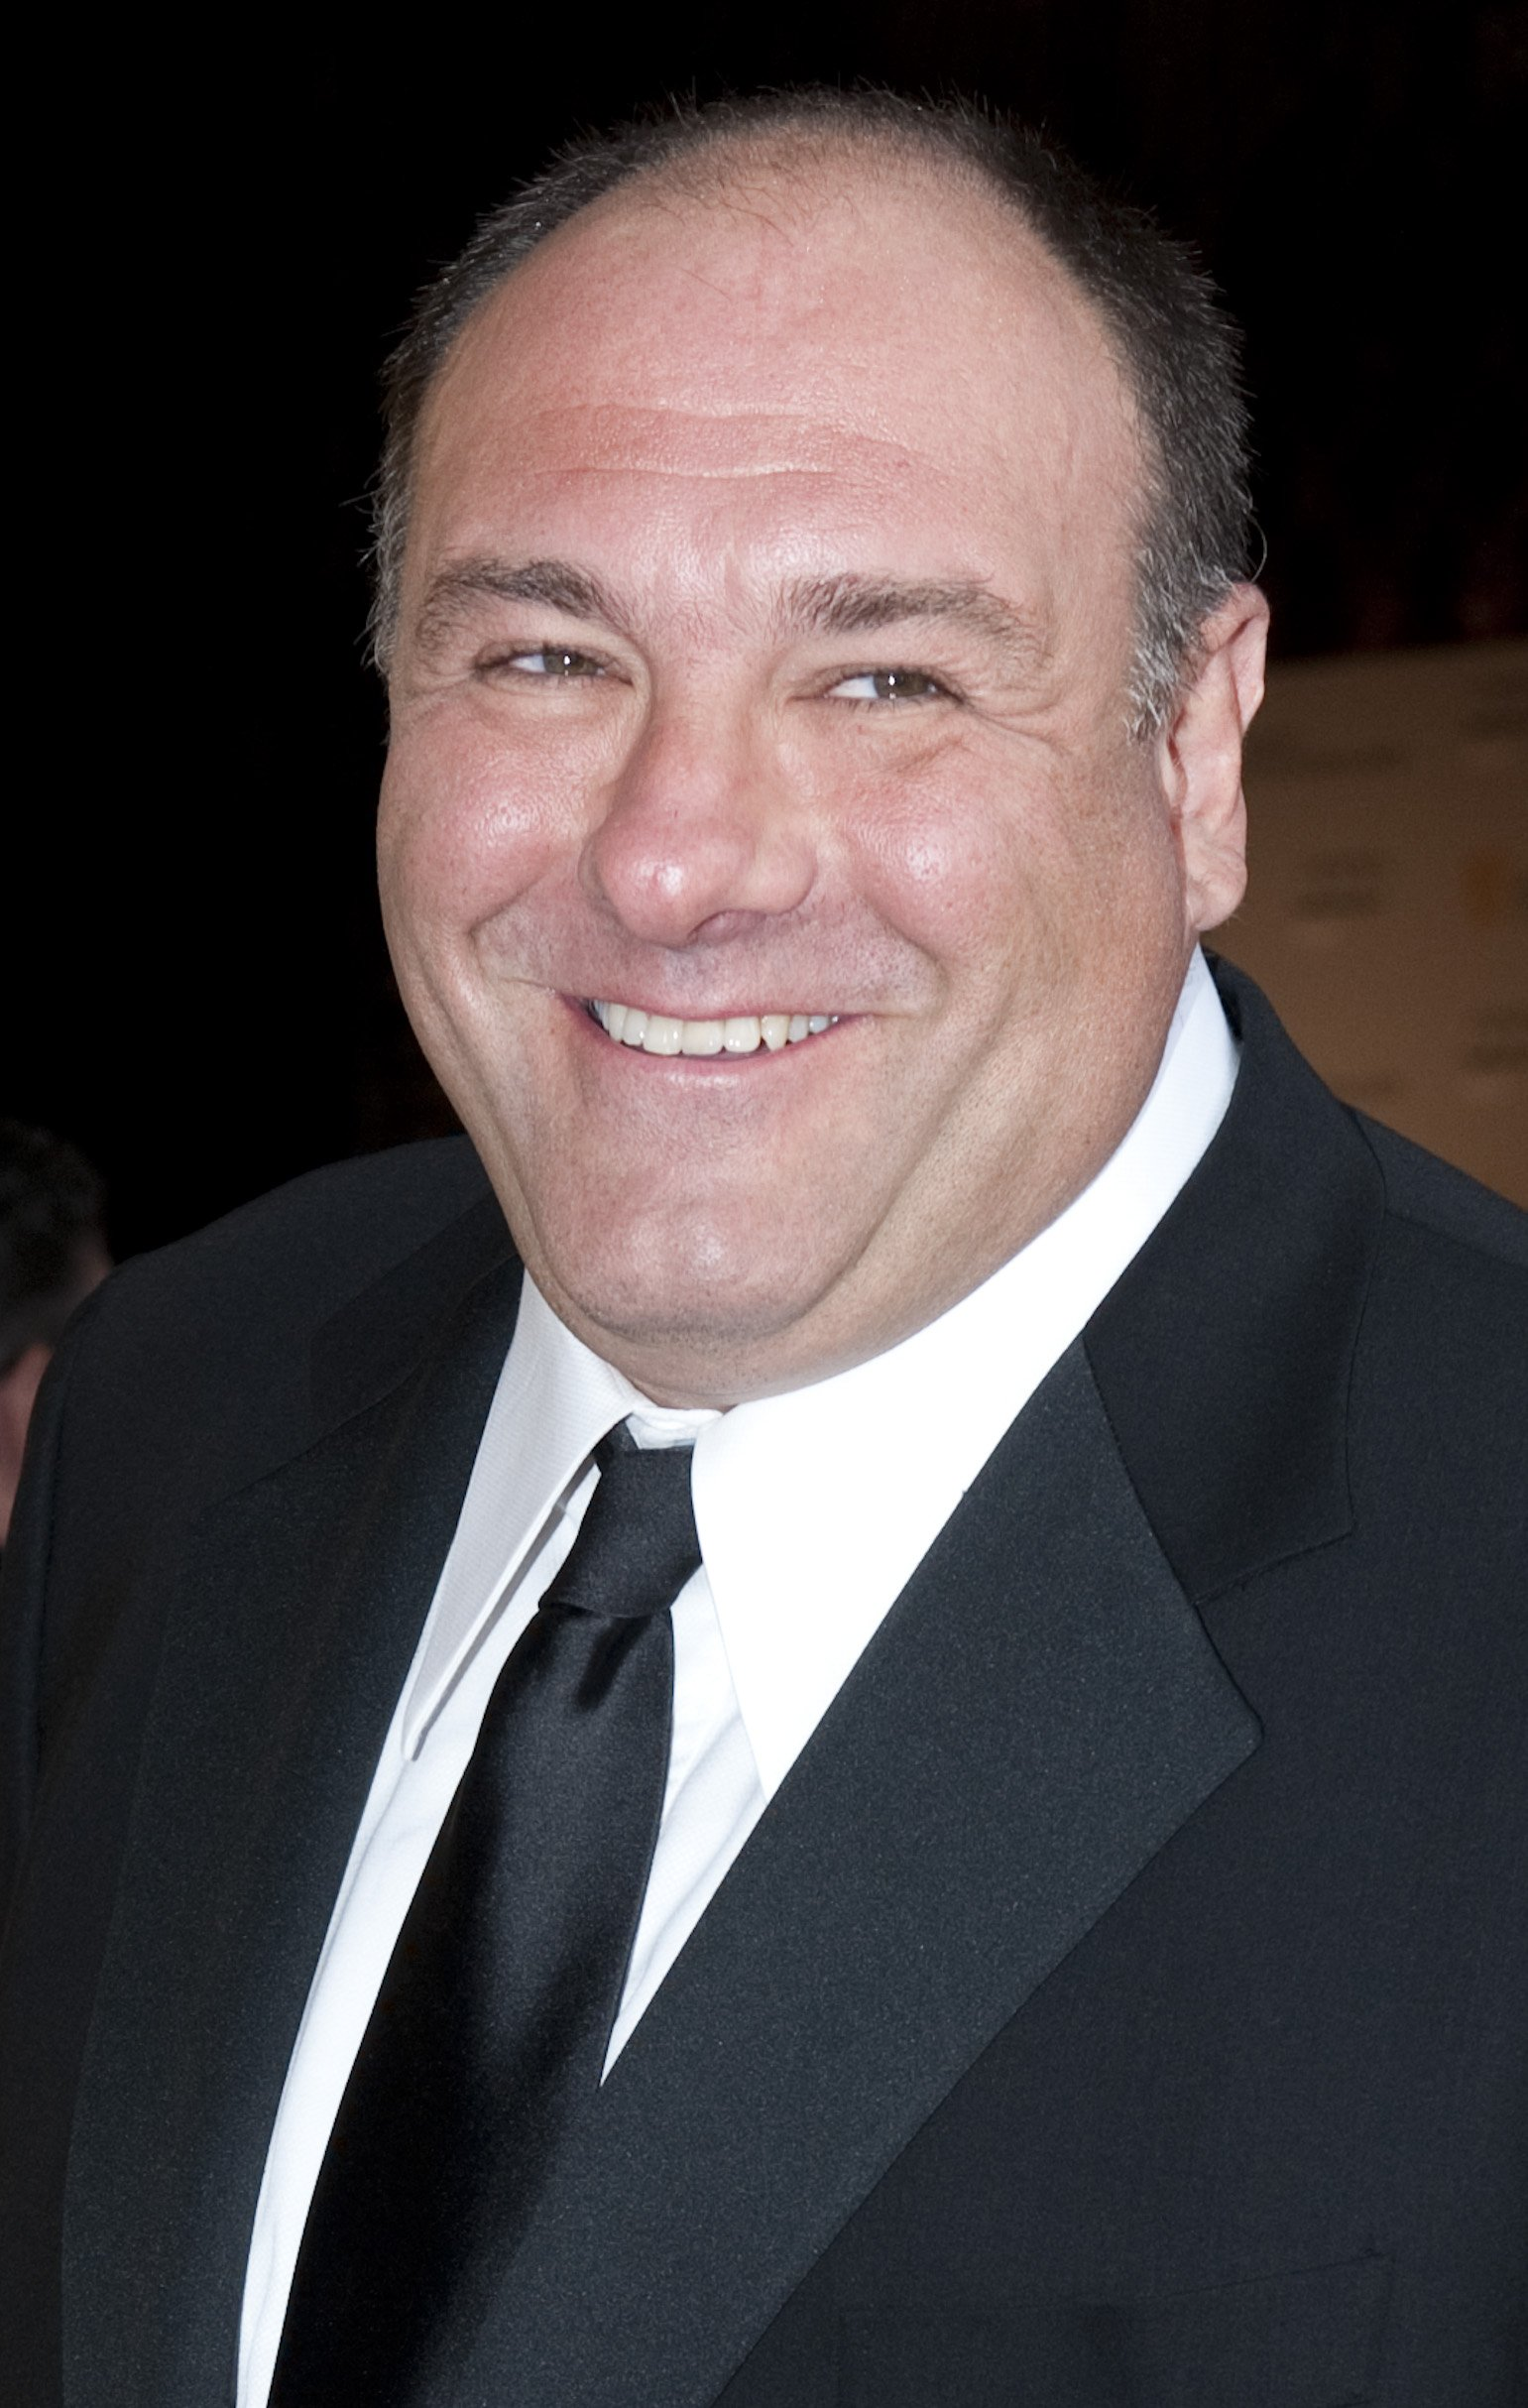 Gandolfini passed away in 2013, at the age of 51. Image credit: Getty/GlobalImagesUkraine